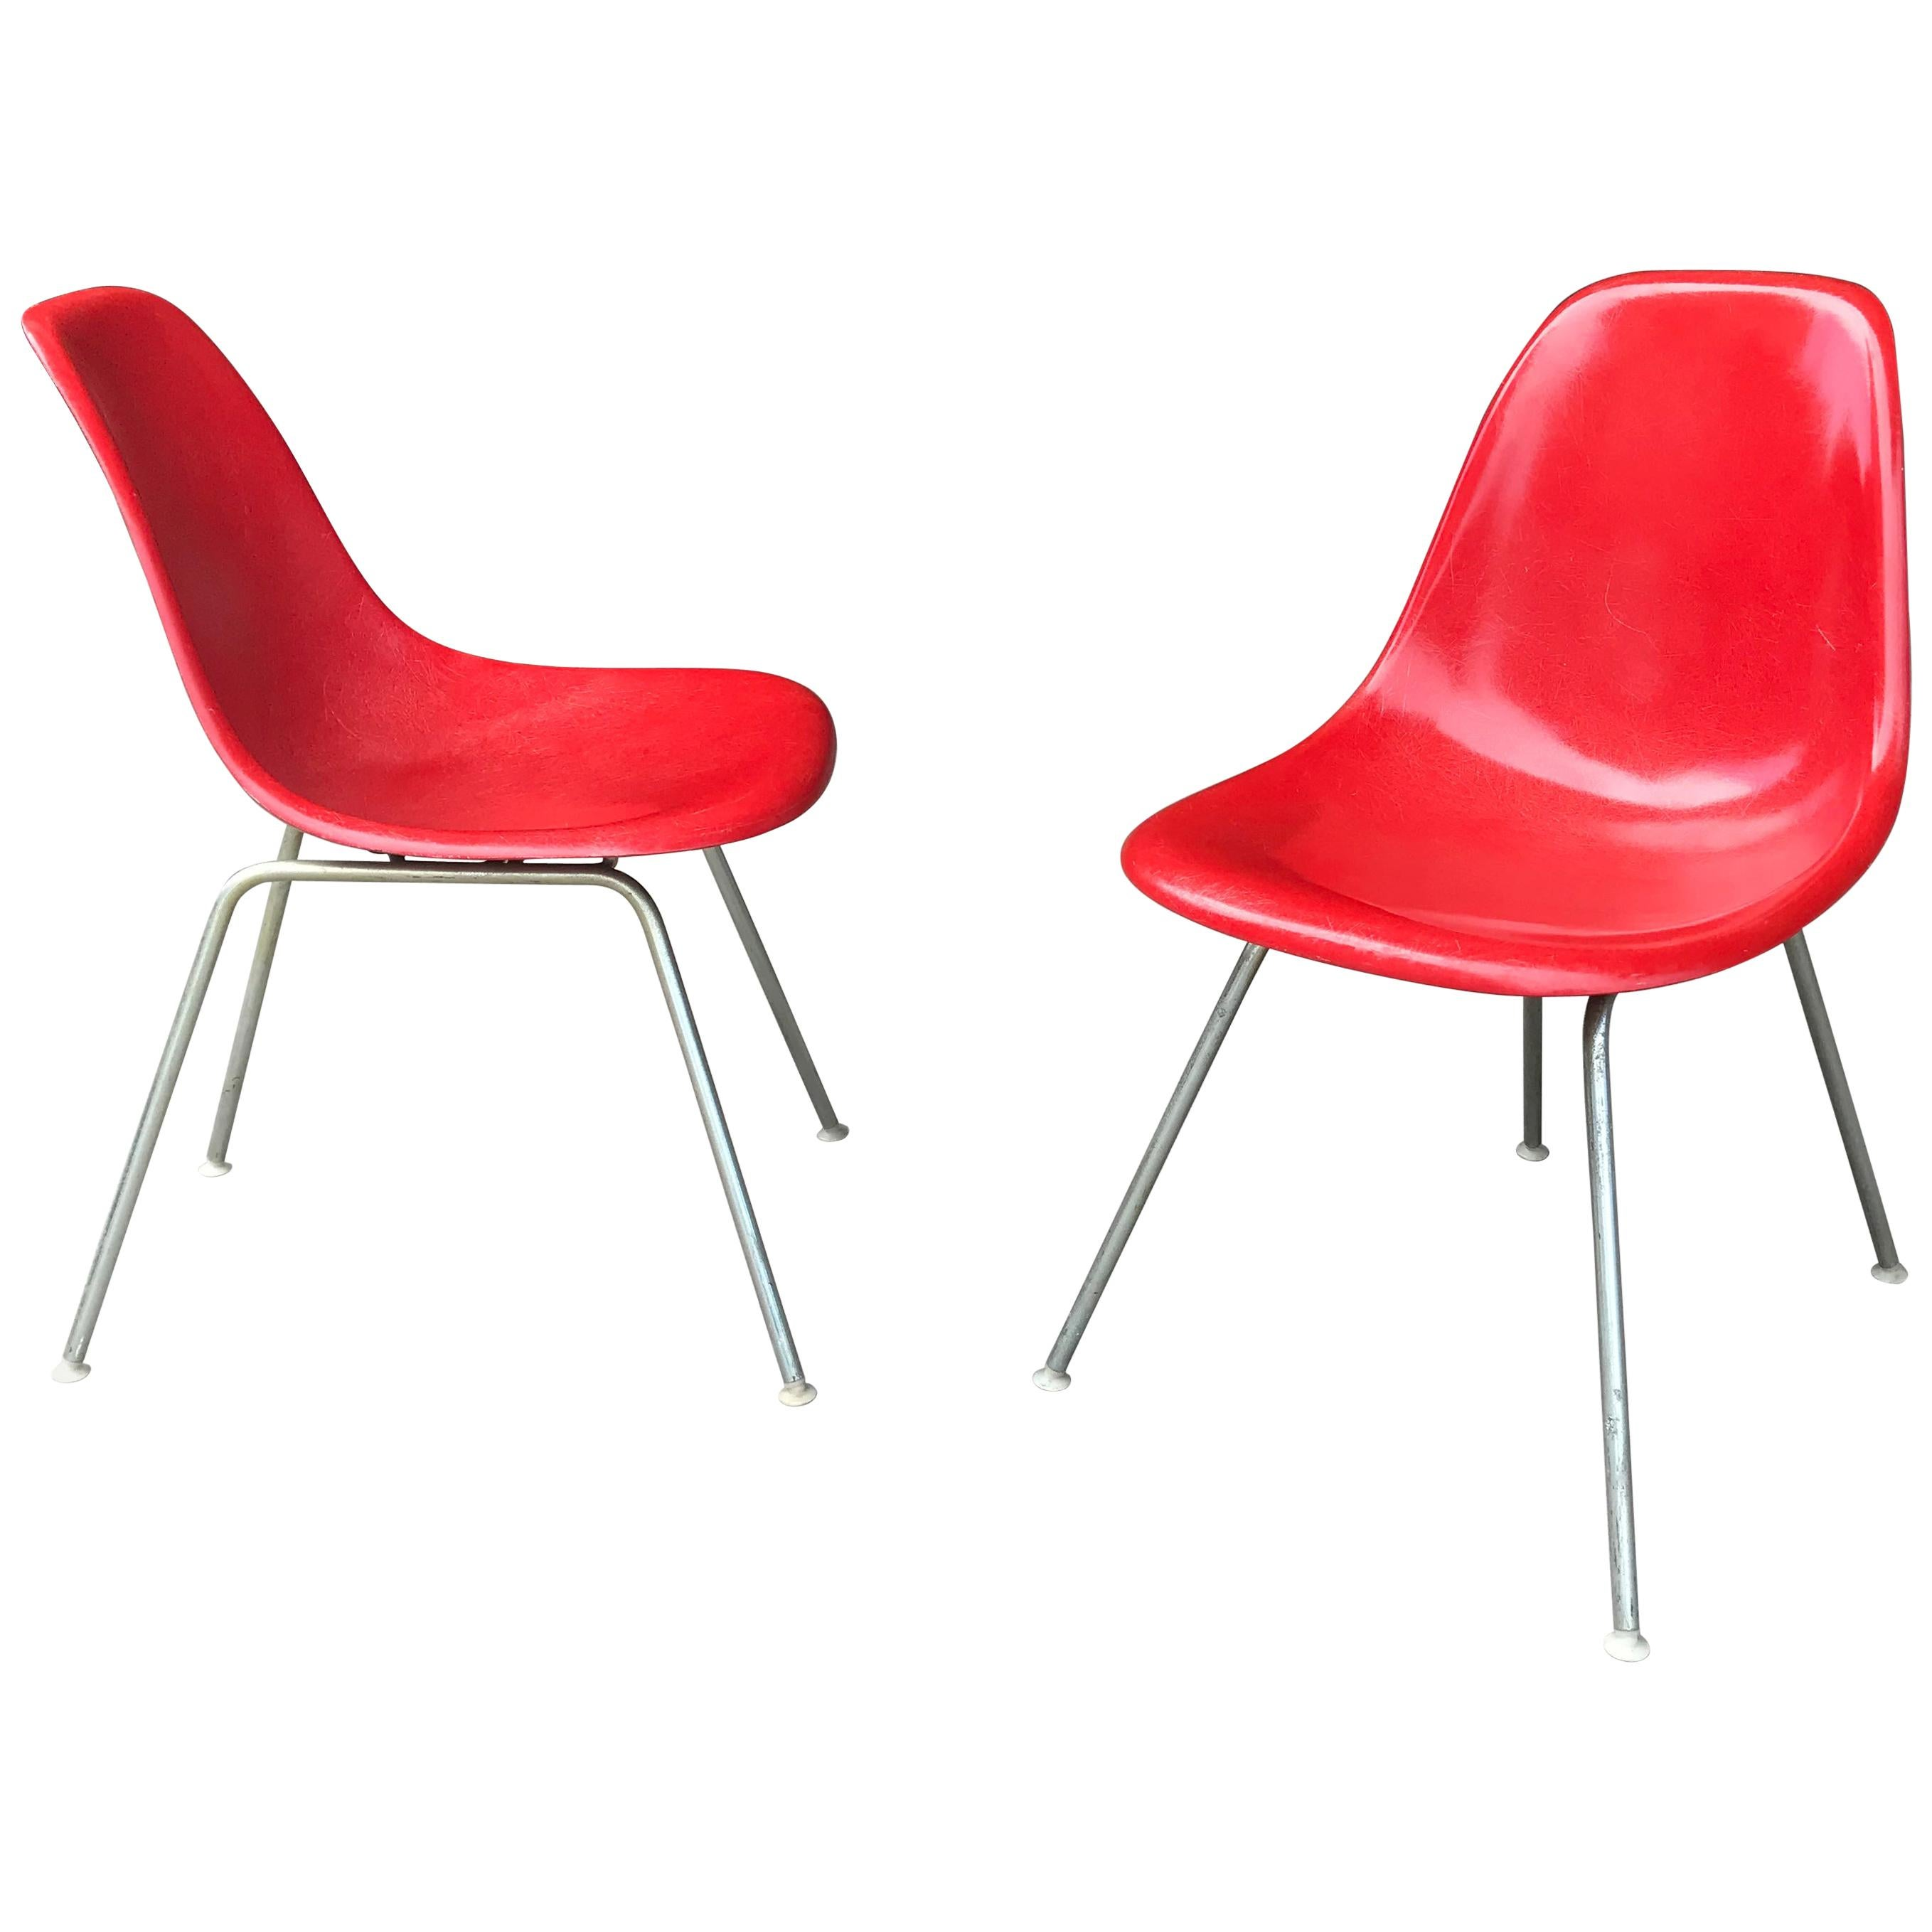 Red Fiberglass Charles and Ray Eames Side Shell Chairs, Scoops Herman Miller